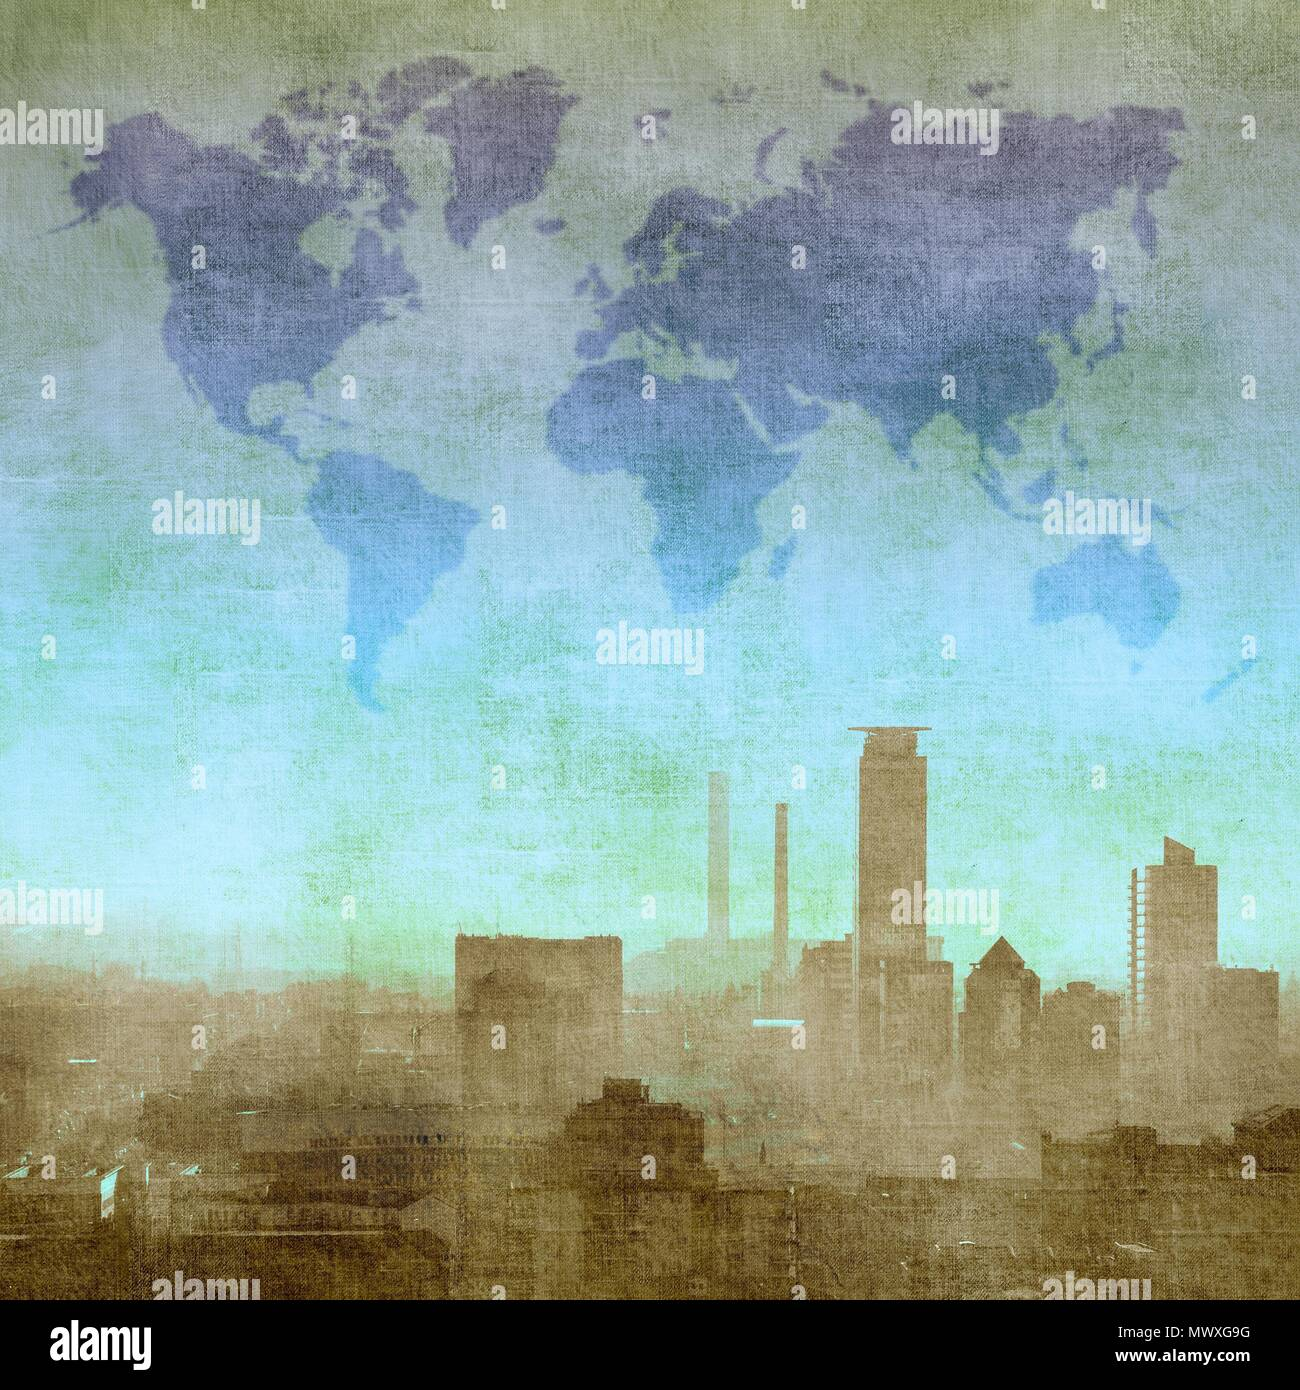 Grunge textured city skyline with world map in the sky elements of grunge textured city skyline with world map in the sky elements of this image furnished by nasa gumiabroncs Image collections